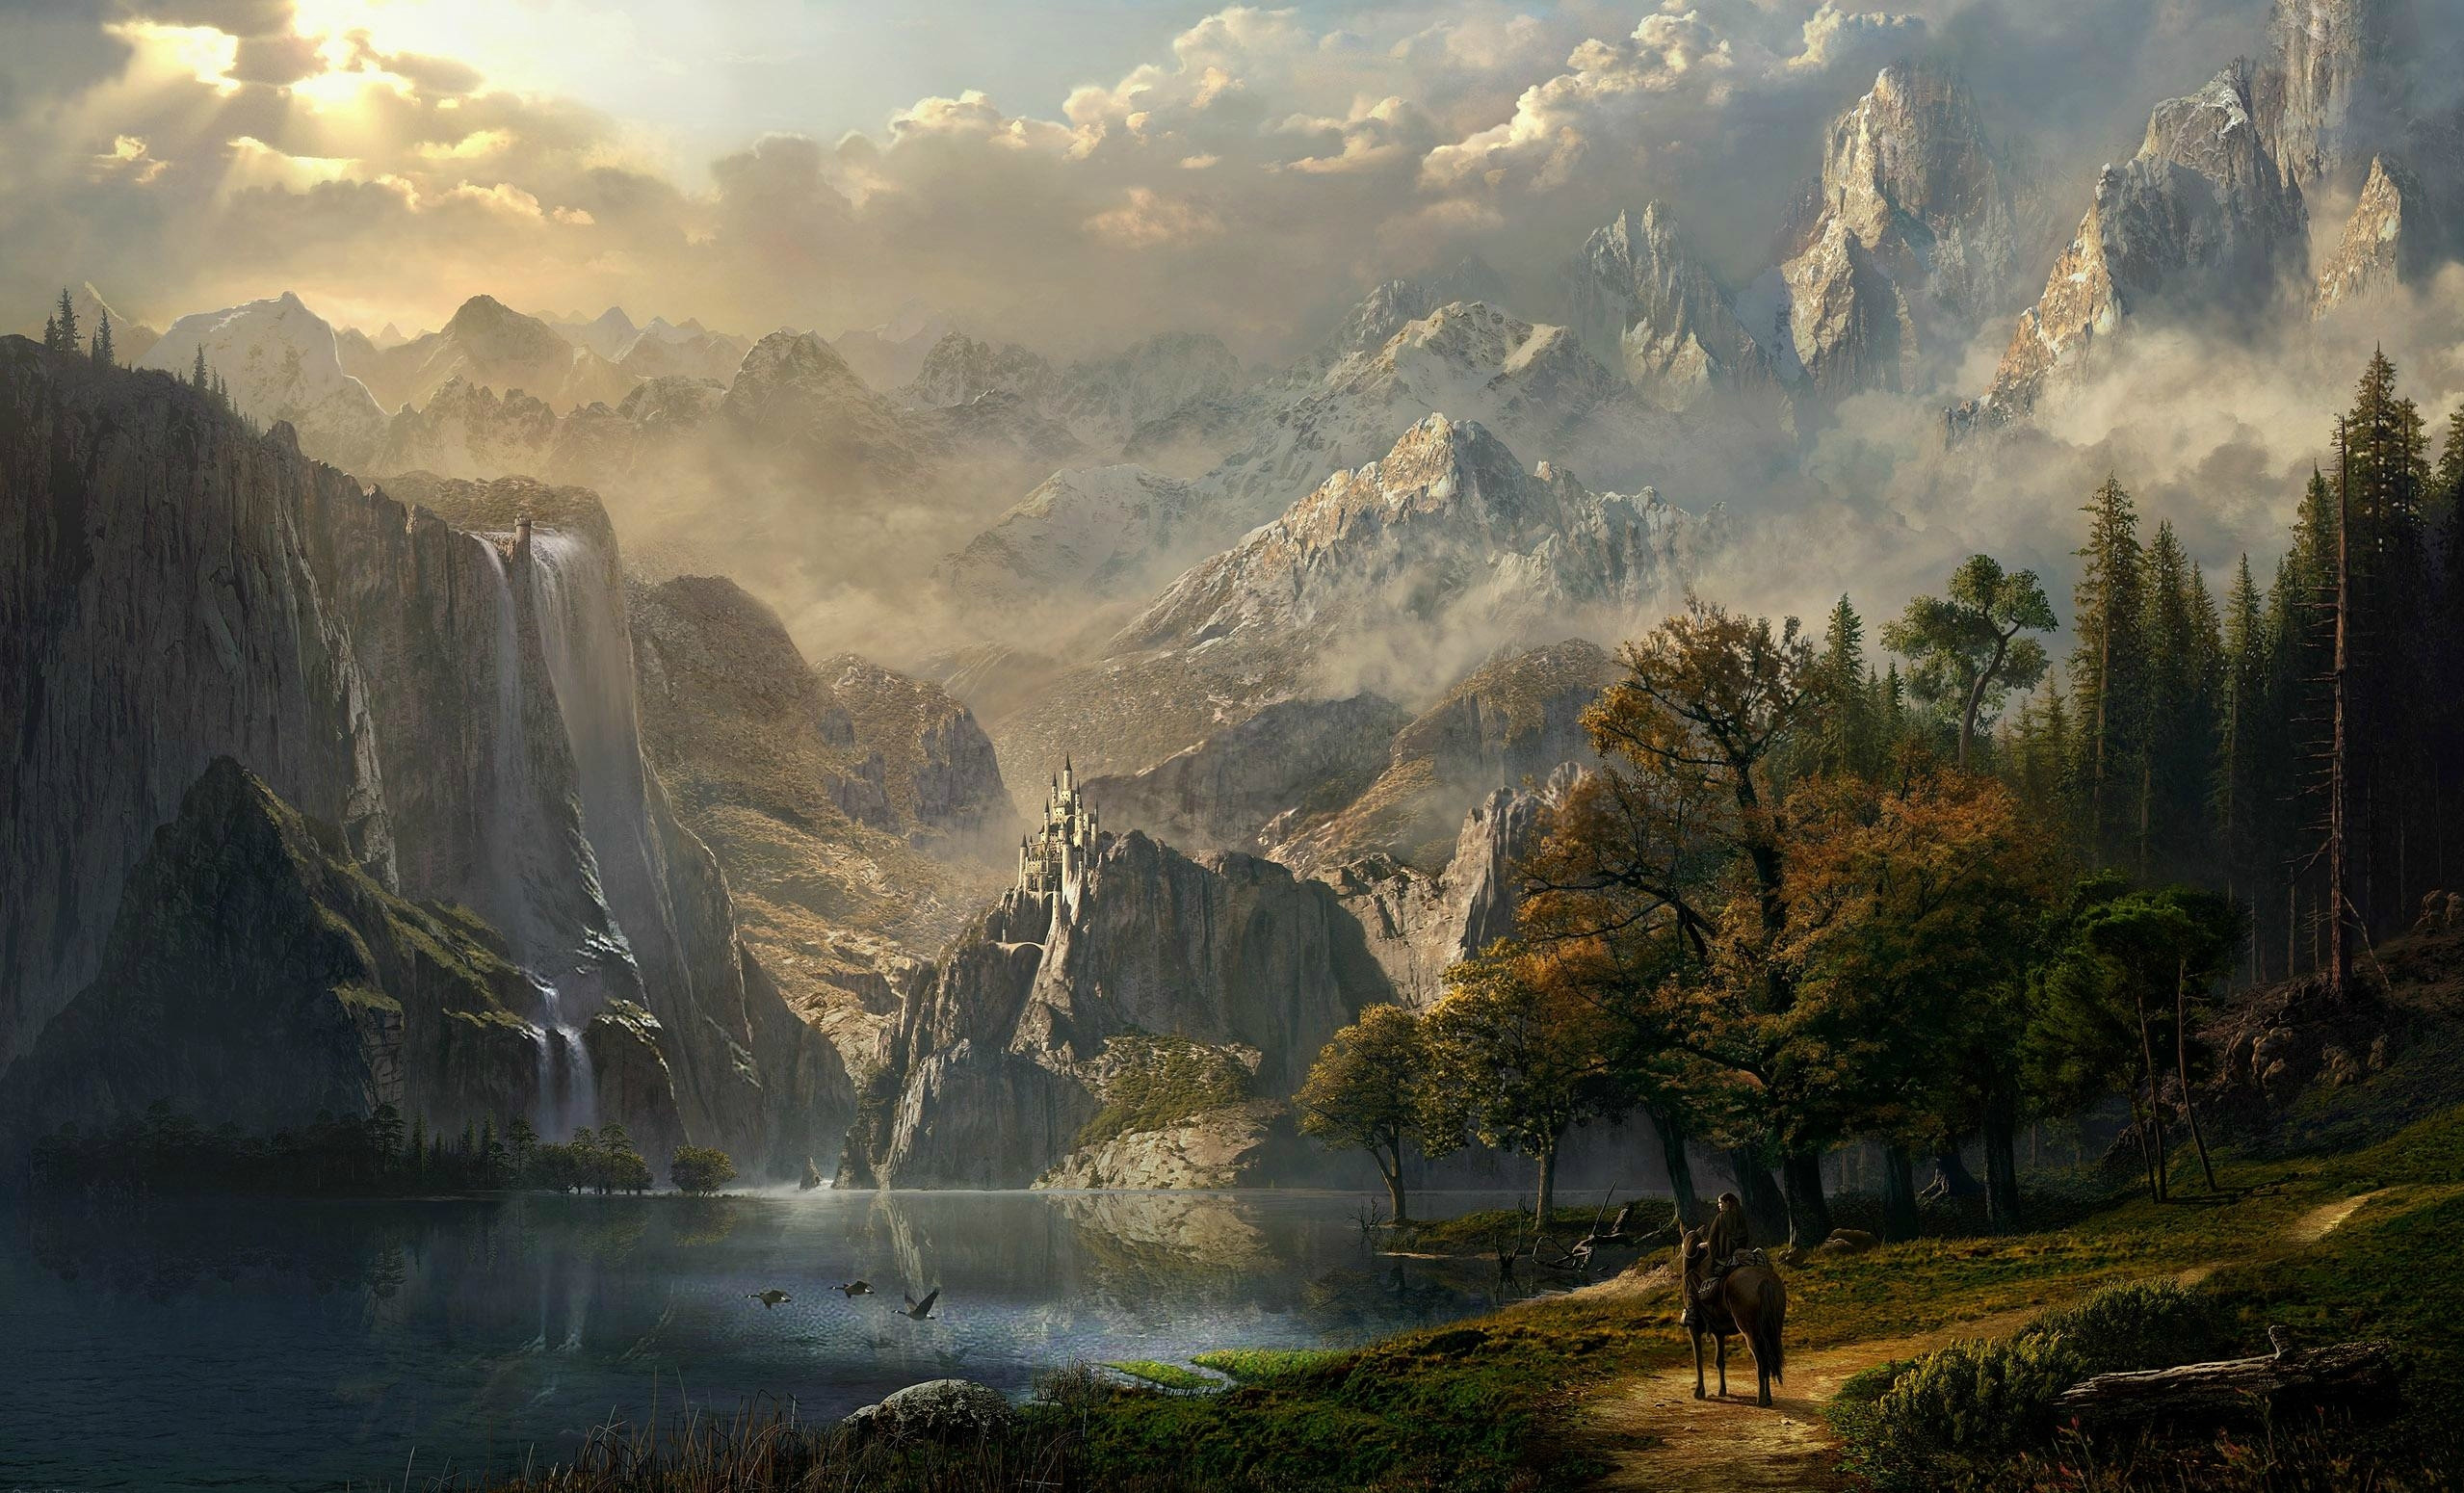 Fantasy Landscape Wallpapers High Quality Resolution with High Definition  Wallpaper px 2.39 MB Other 1920×1080